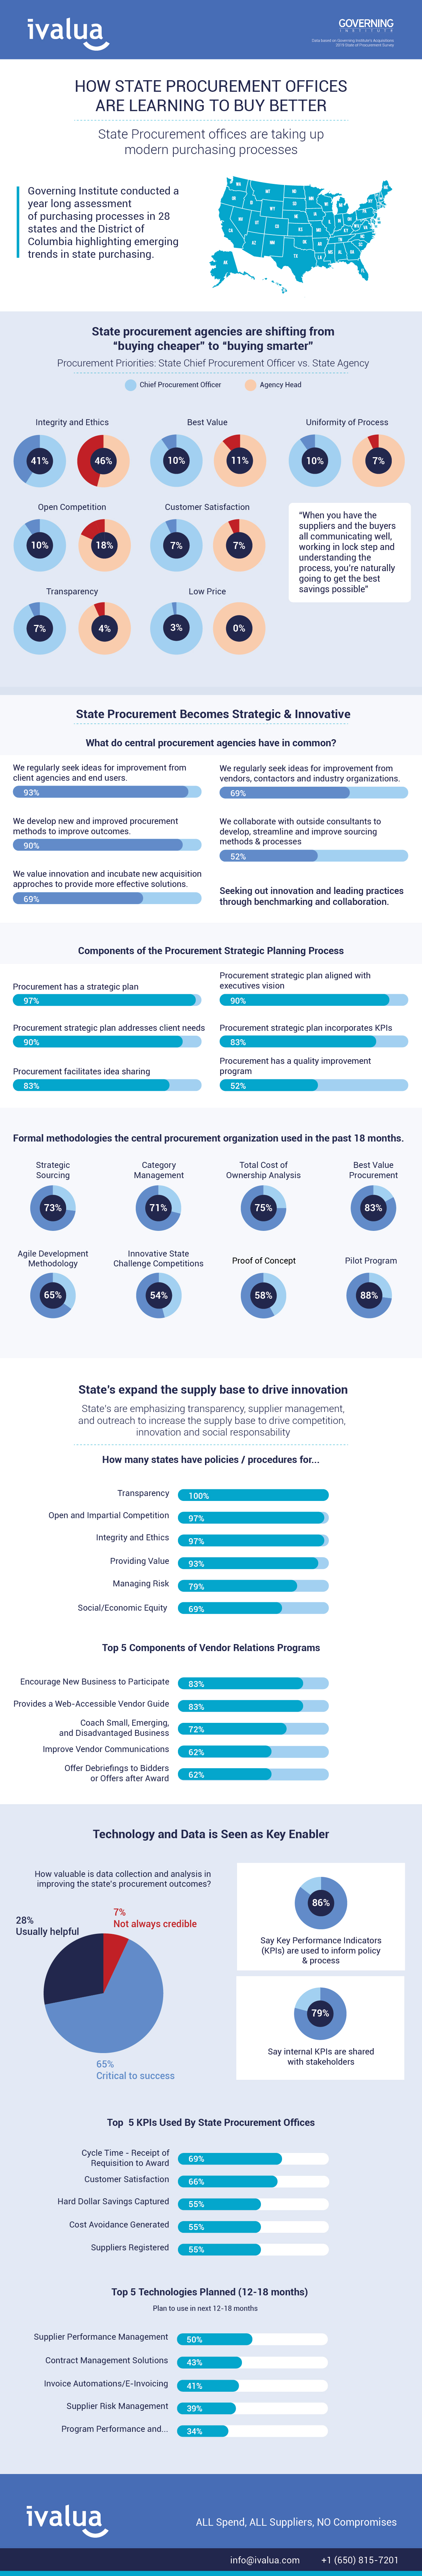 public-sector-infographic-01